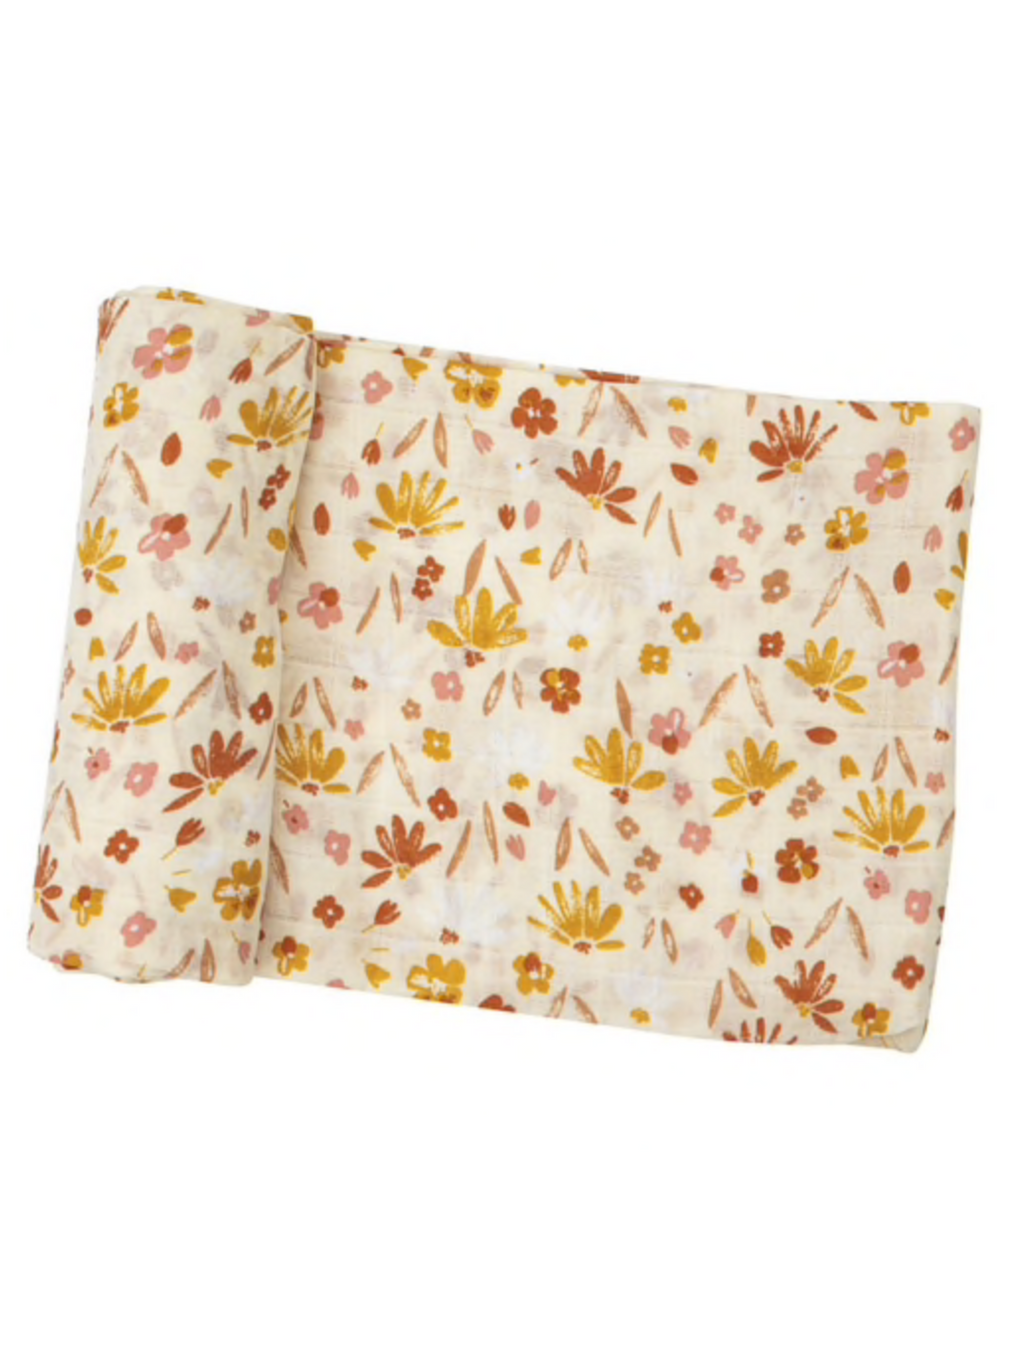 Daisy Baby Swaddle Blanket